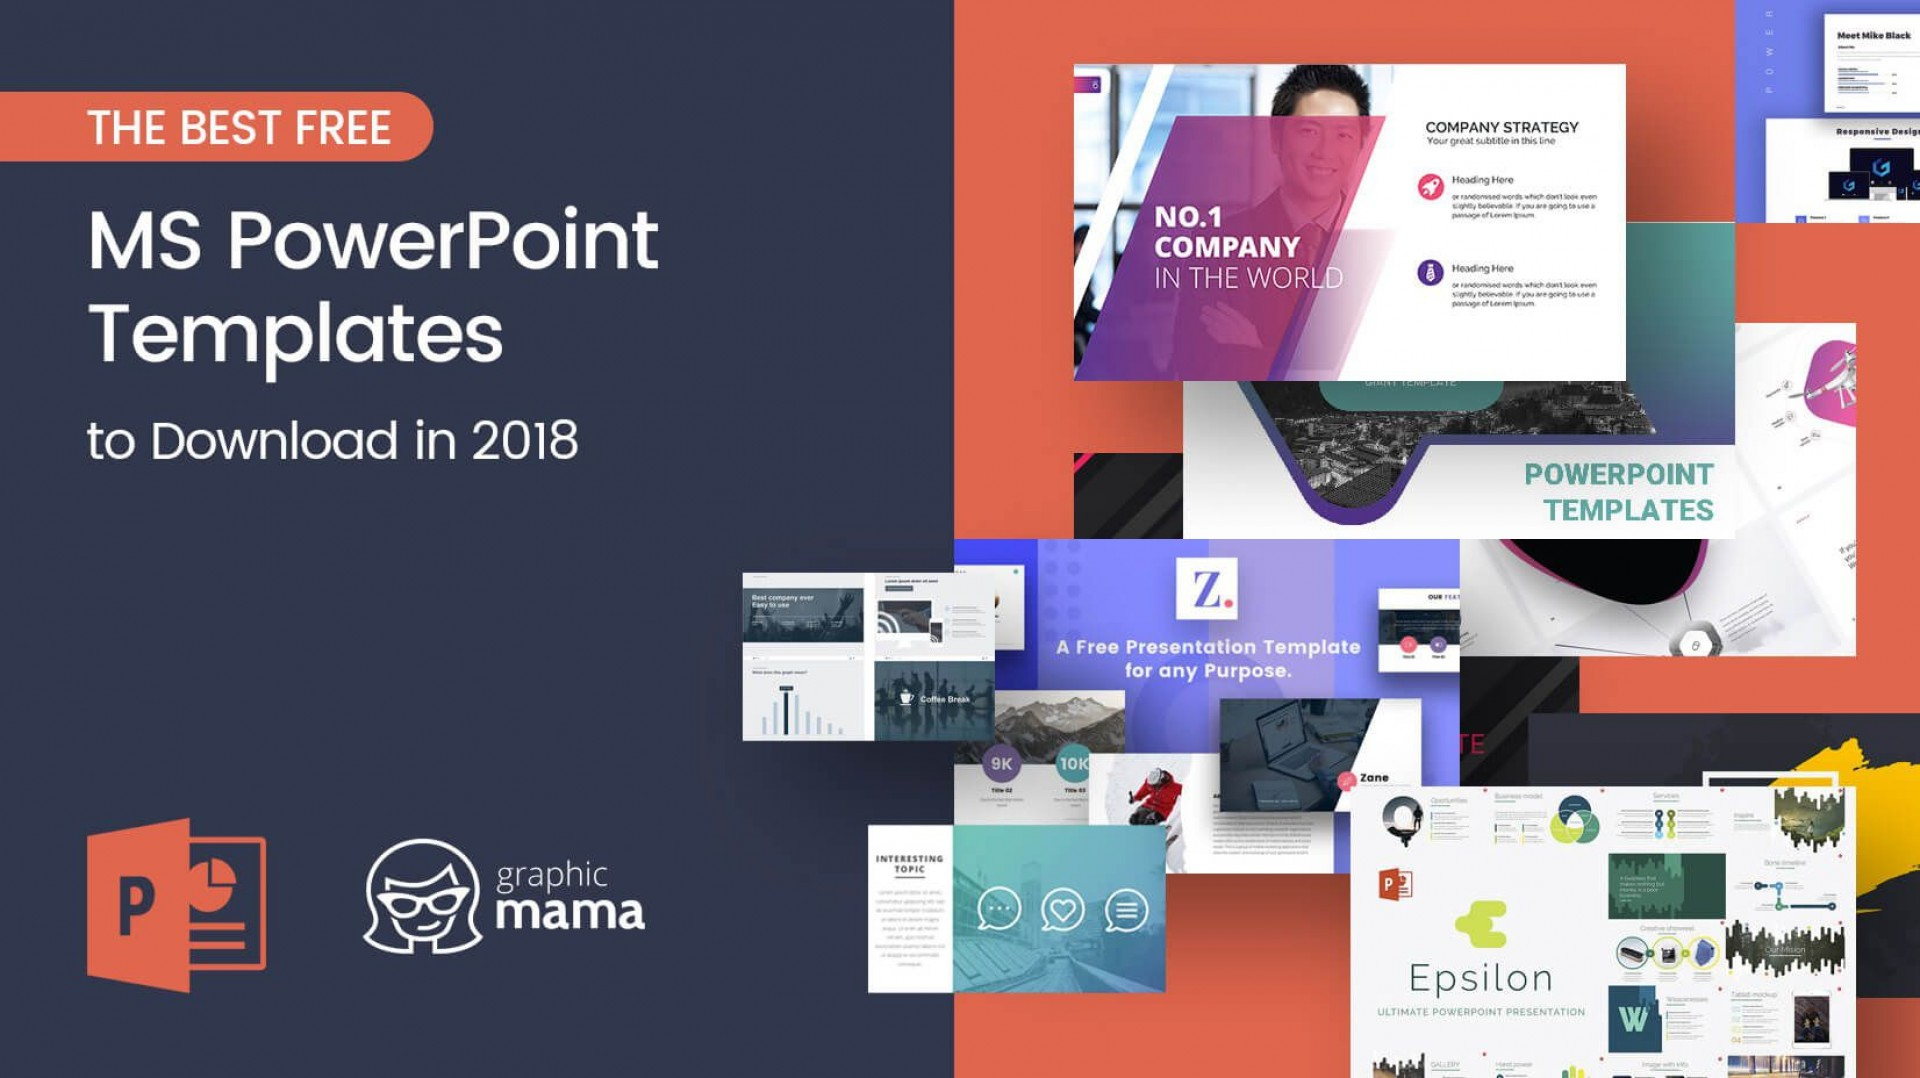 008 Fascinating Product Presentation Ppt Template Free Download High Def 1920